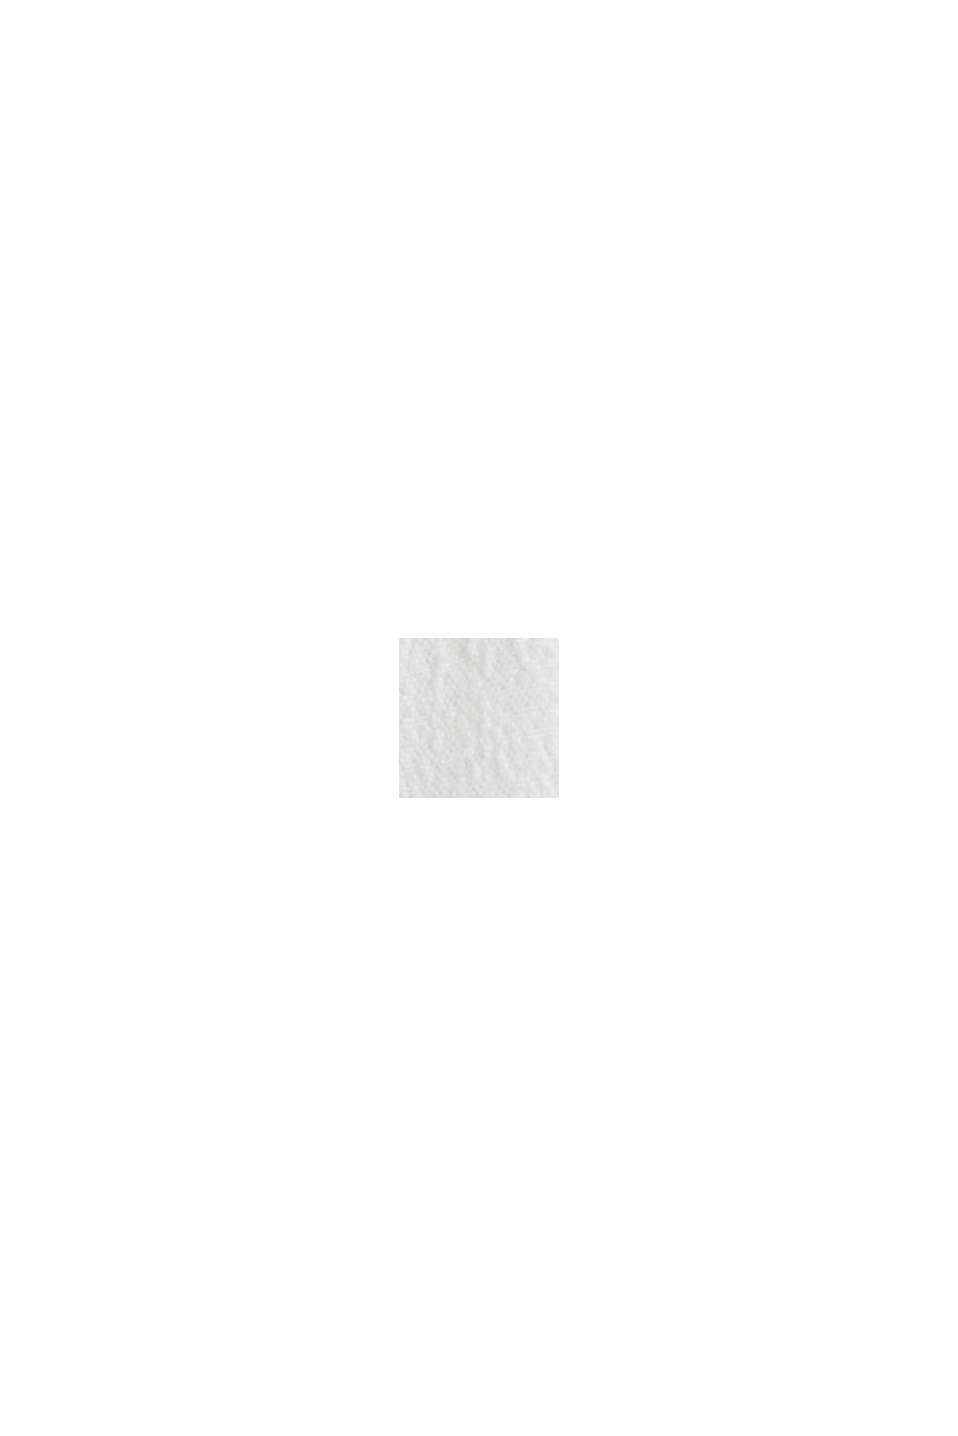 Soepele crêpe blouse met ruches, OFF WHITE, swatch